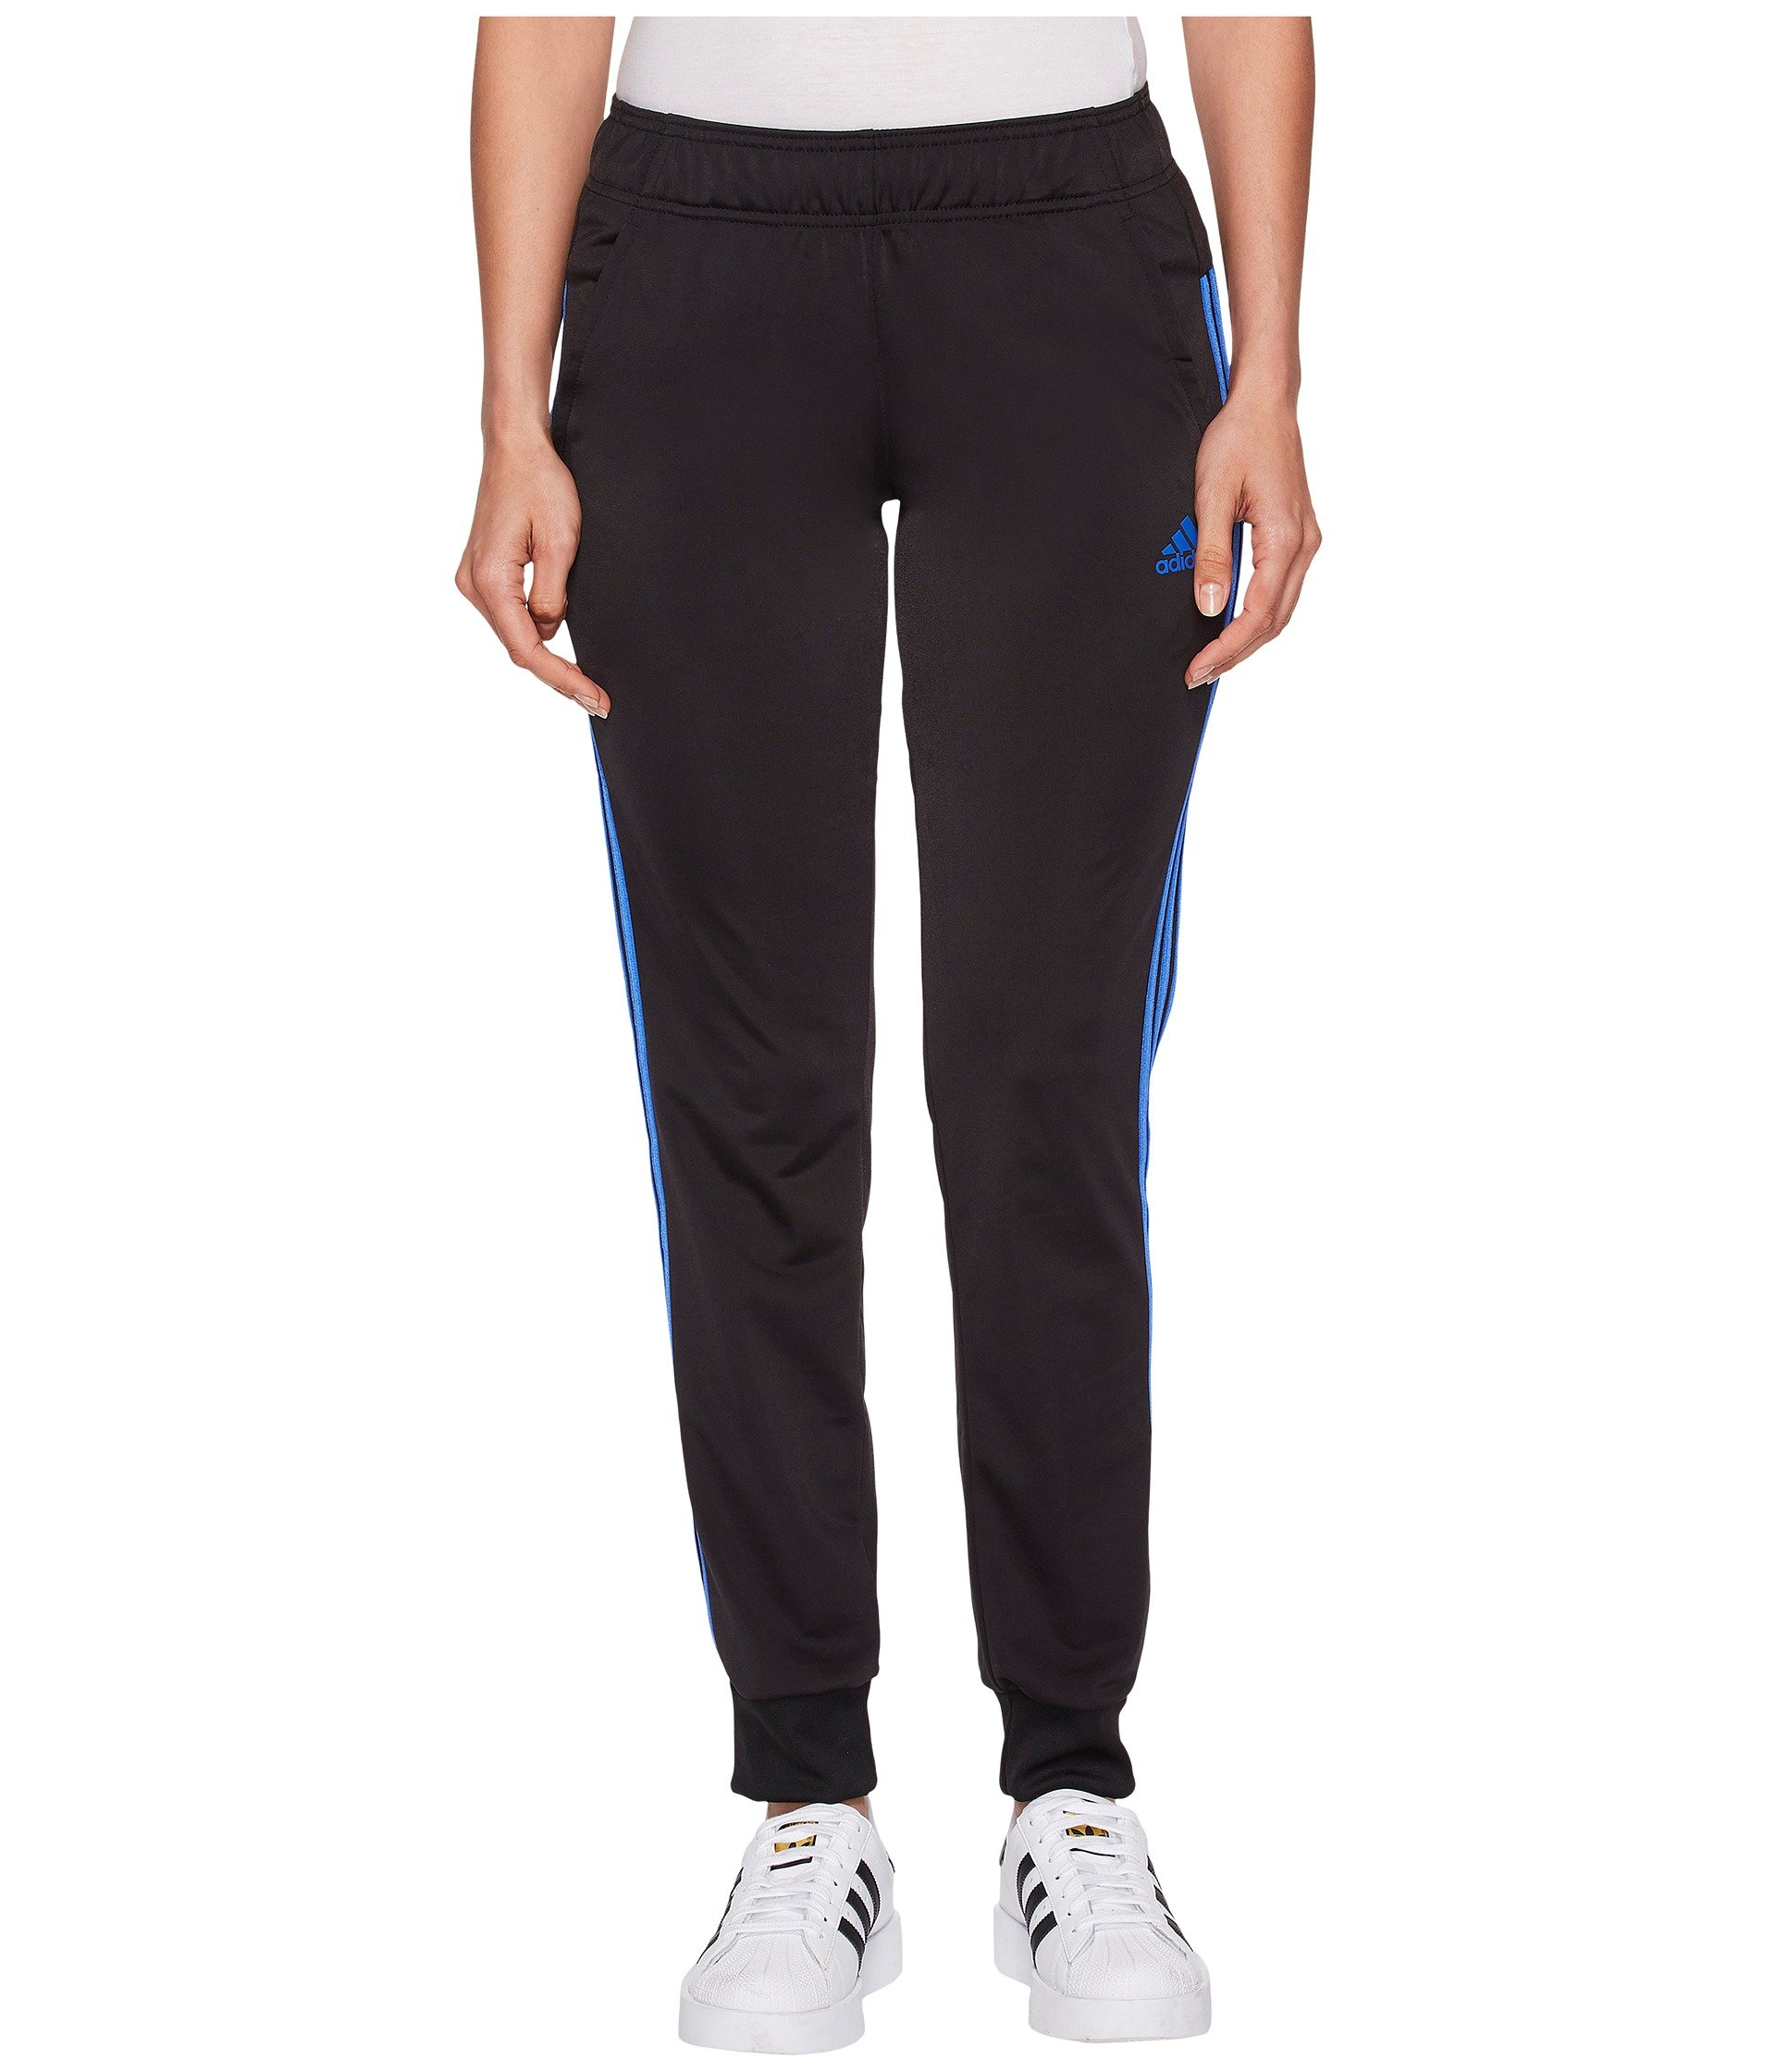 adidas Women's D2M Cuff Pants Black/High-Res Blue Large R